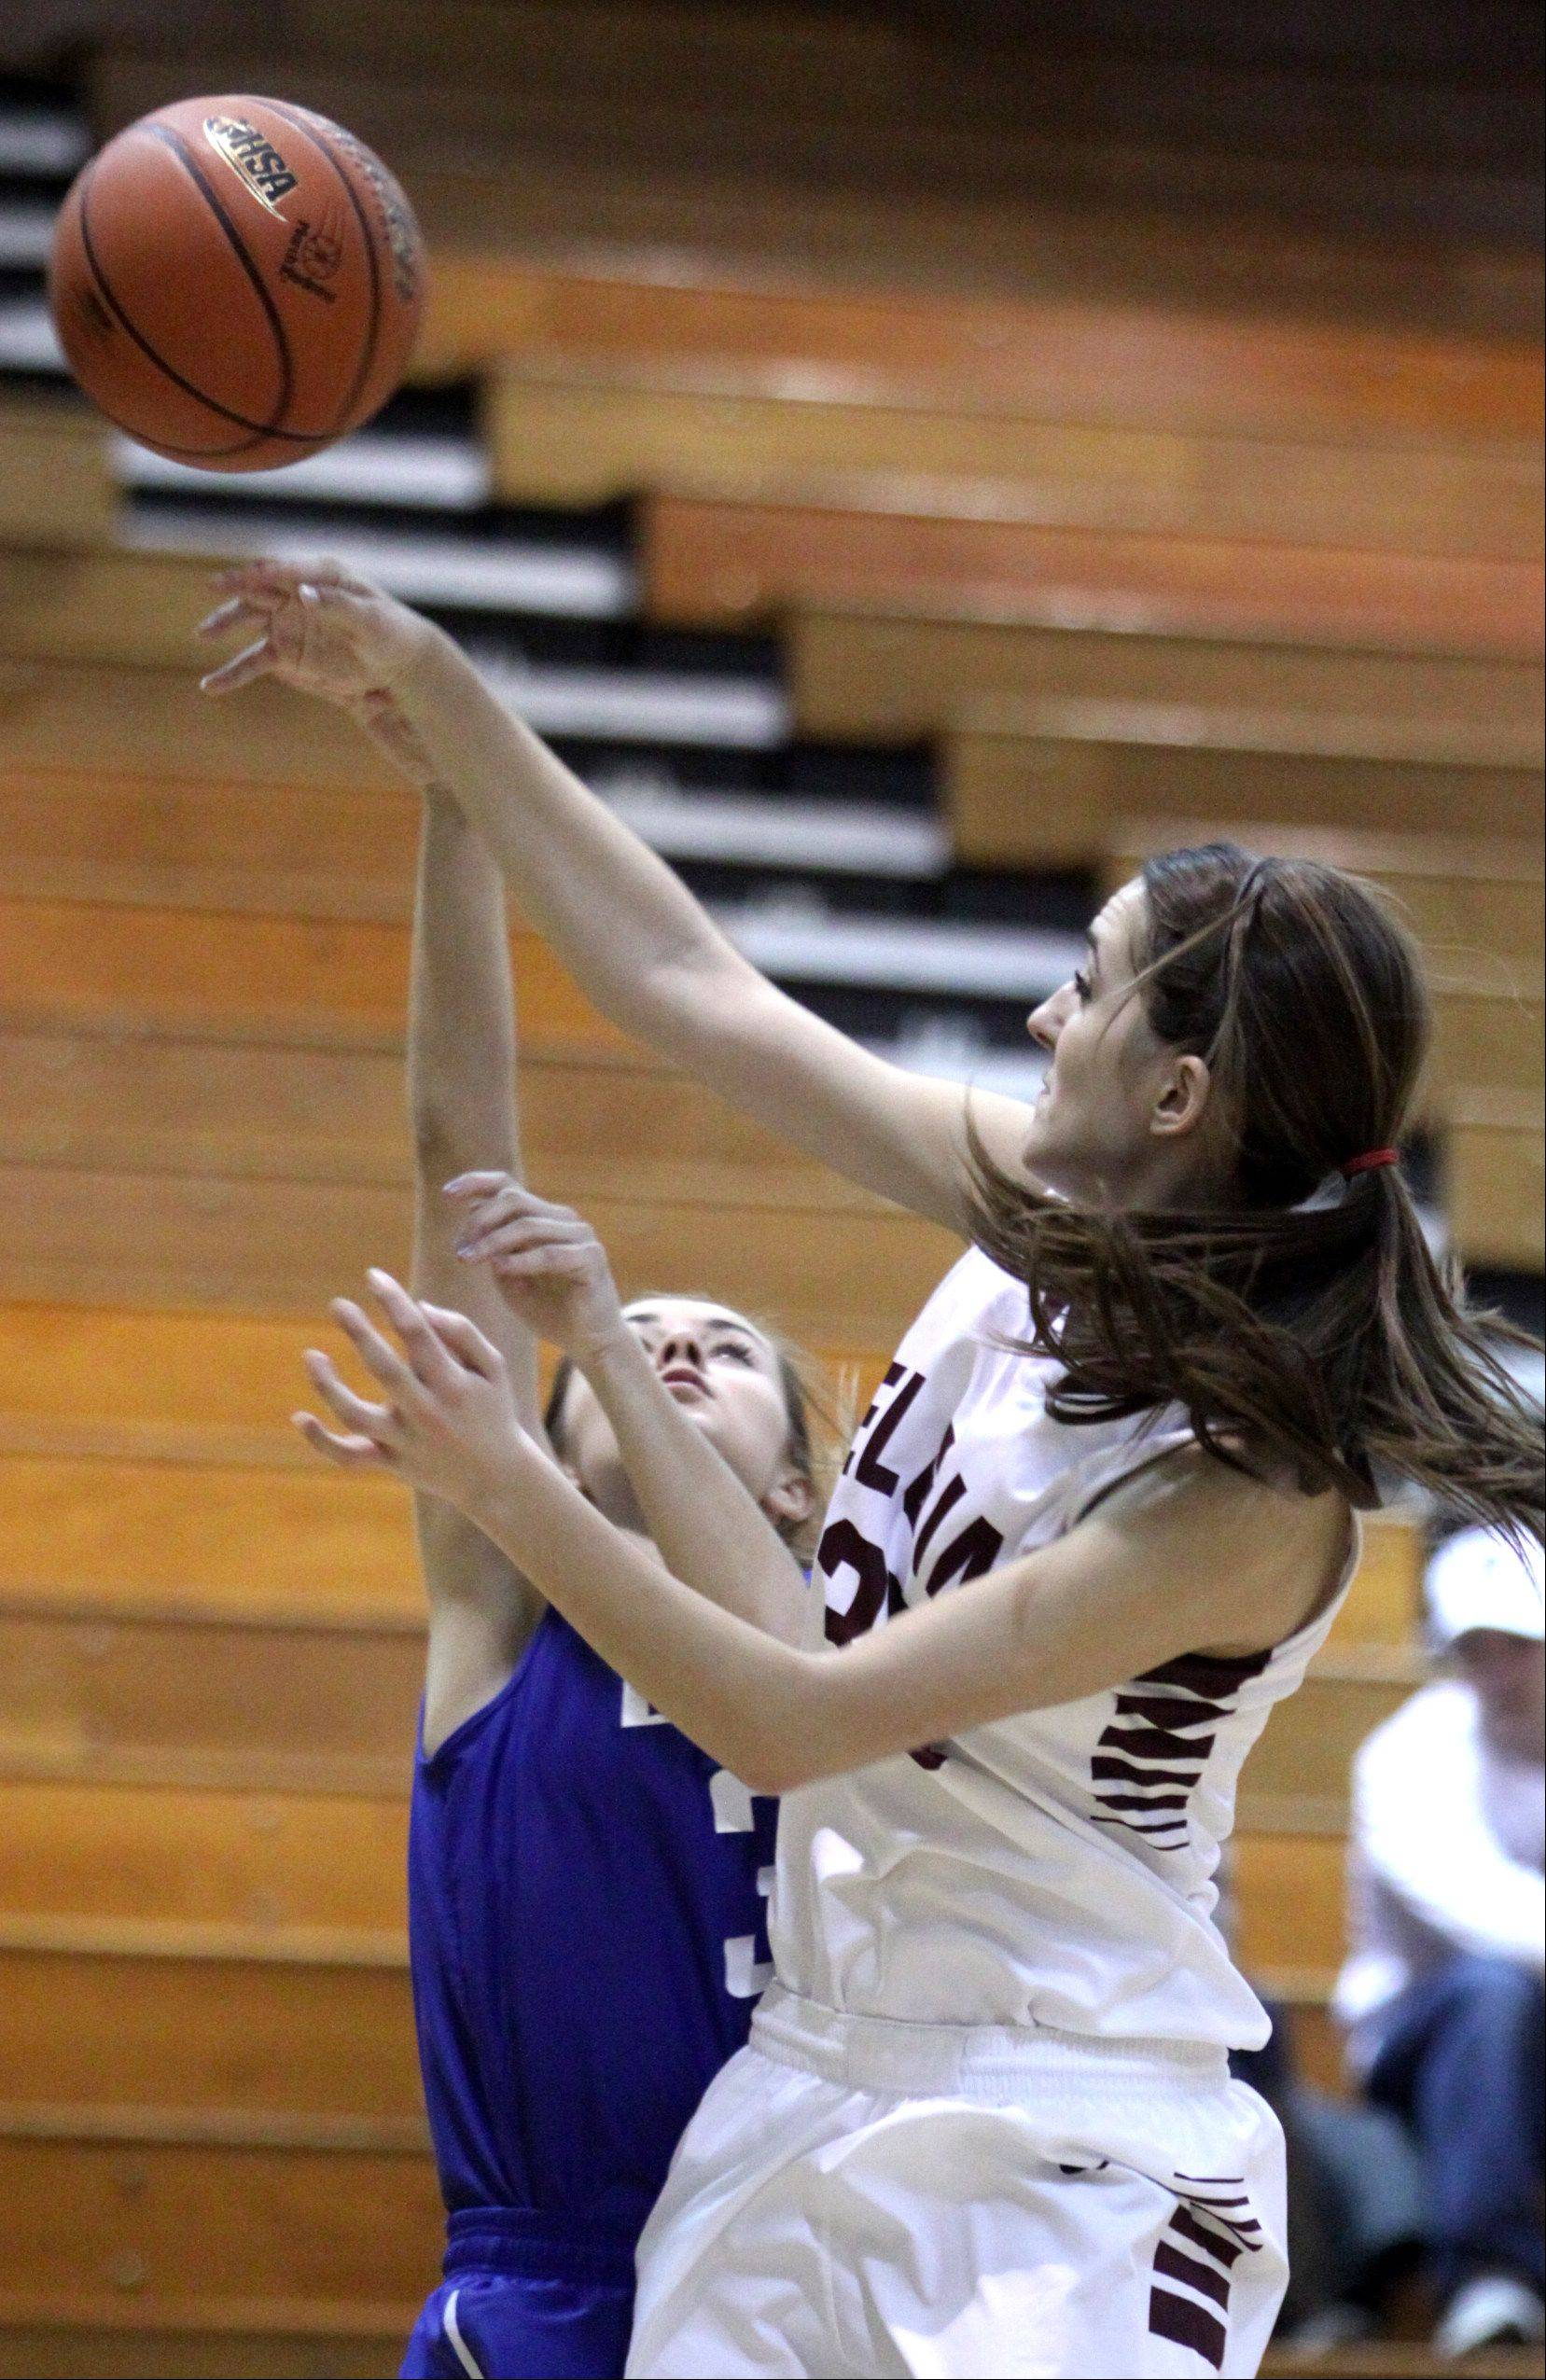 Elgin's Tamara Milosevic, right, blocks Larkin's Samantha Wahl, left, during a regional game at Streamwood High School on Monday night.